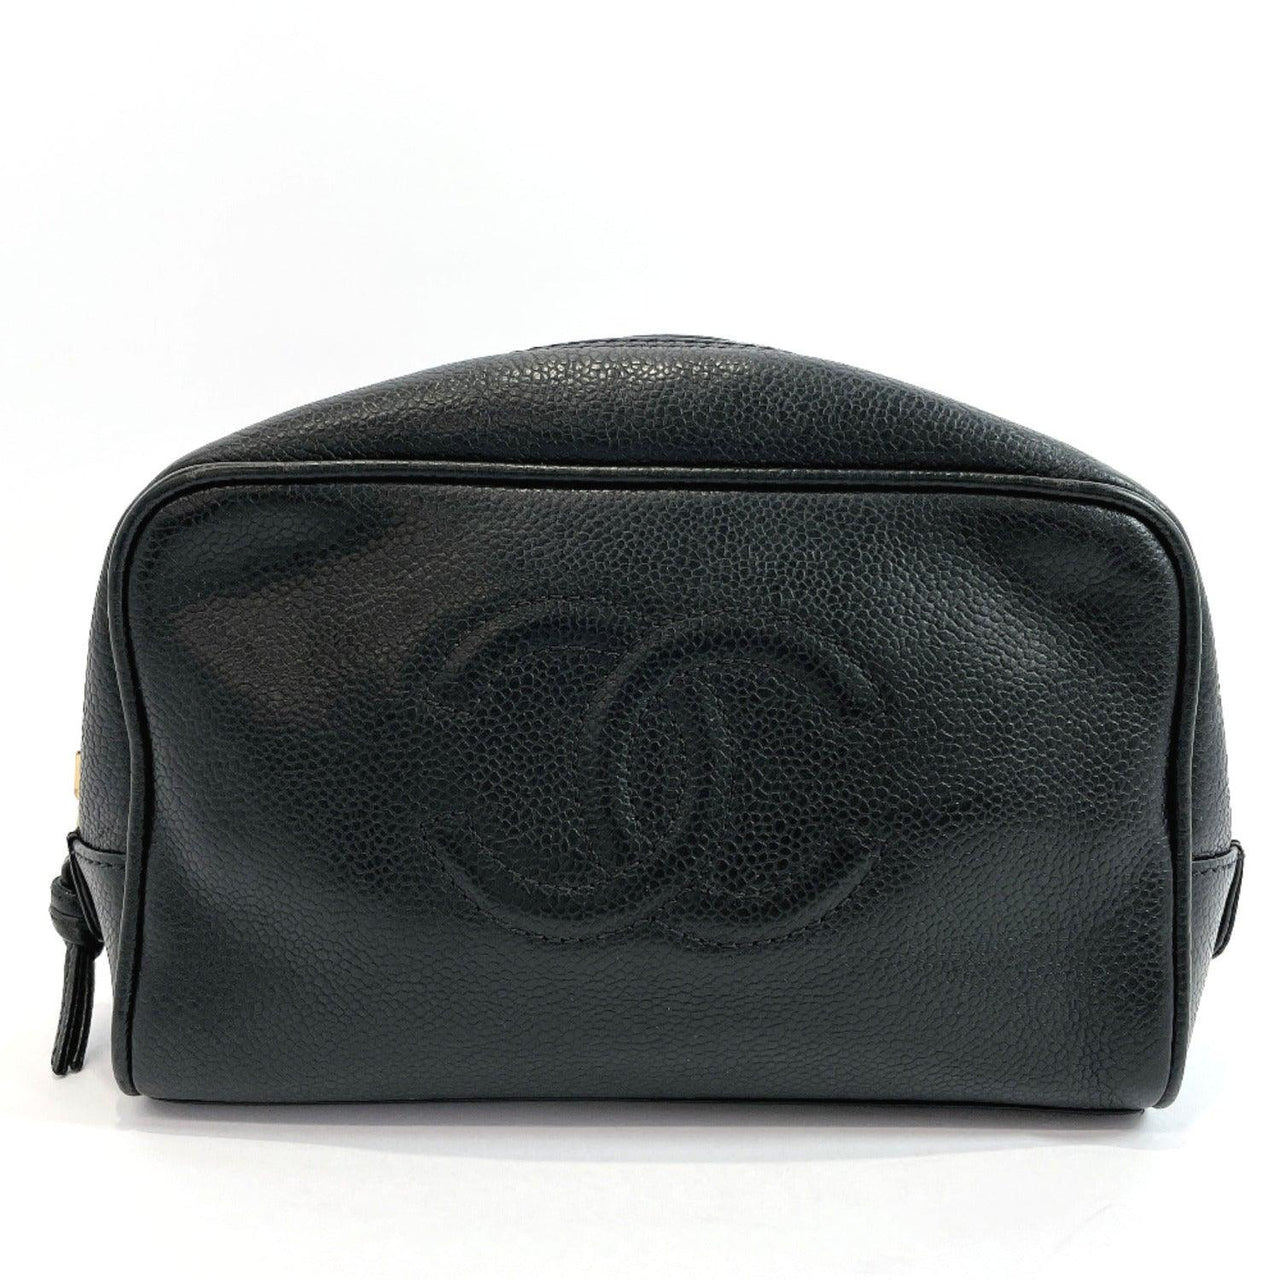 CHANEL Pouch Cosmetics Pouch COCO Mark Matt caviar skin black Gold Hardware Women Used